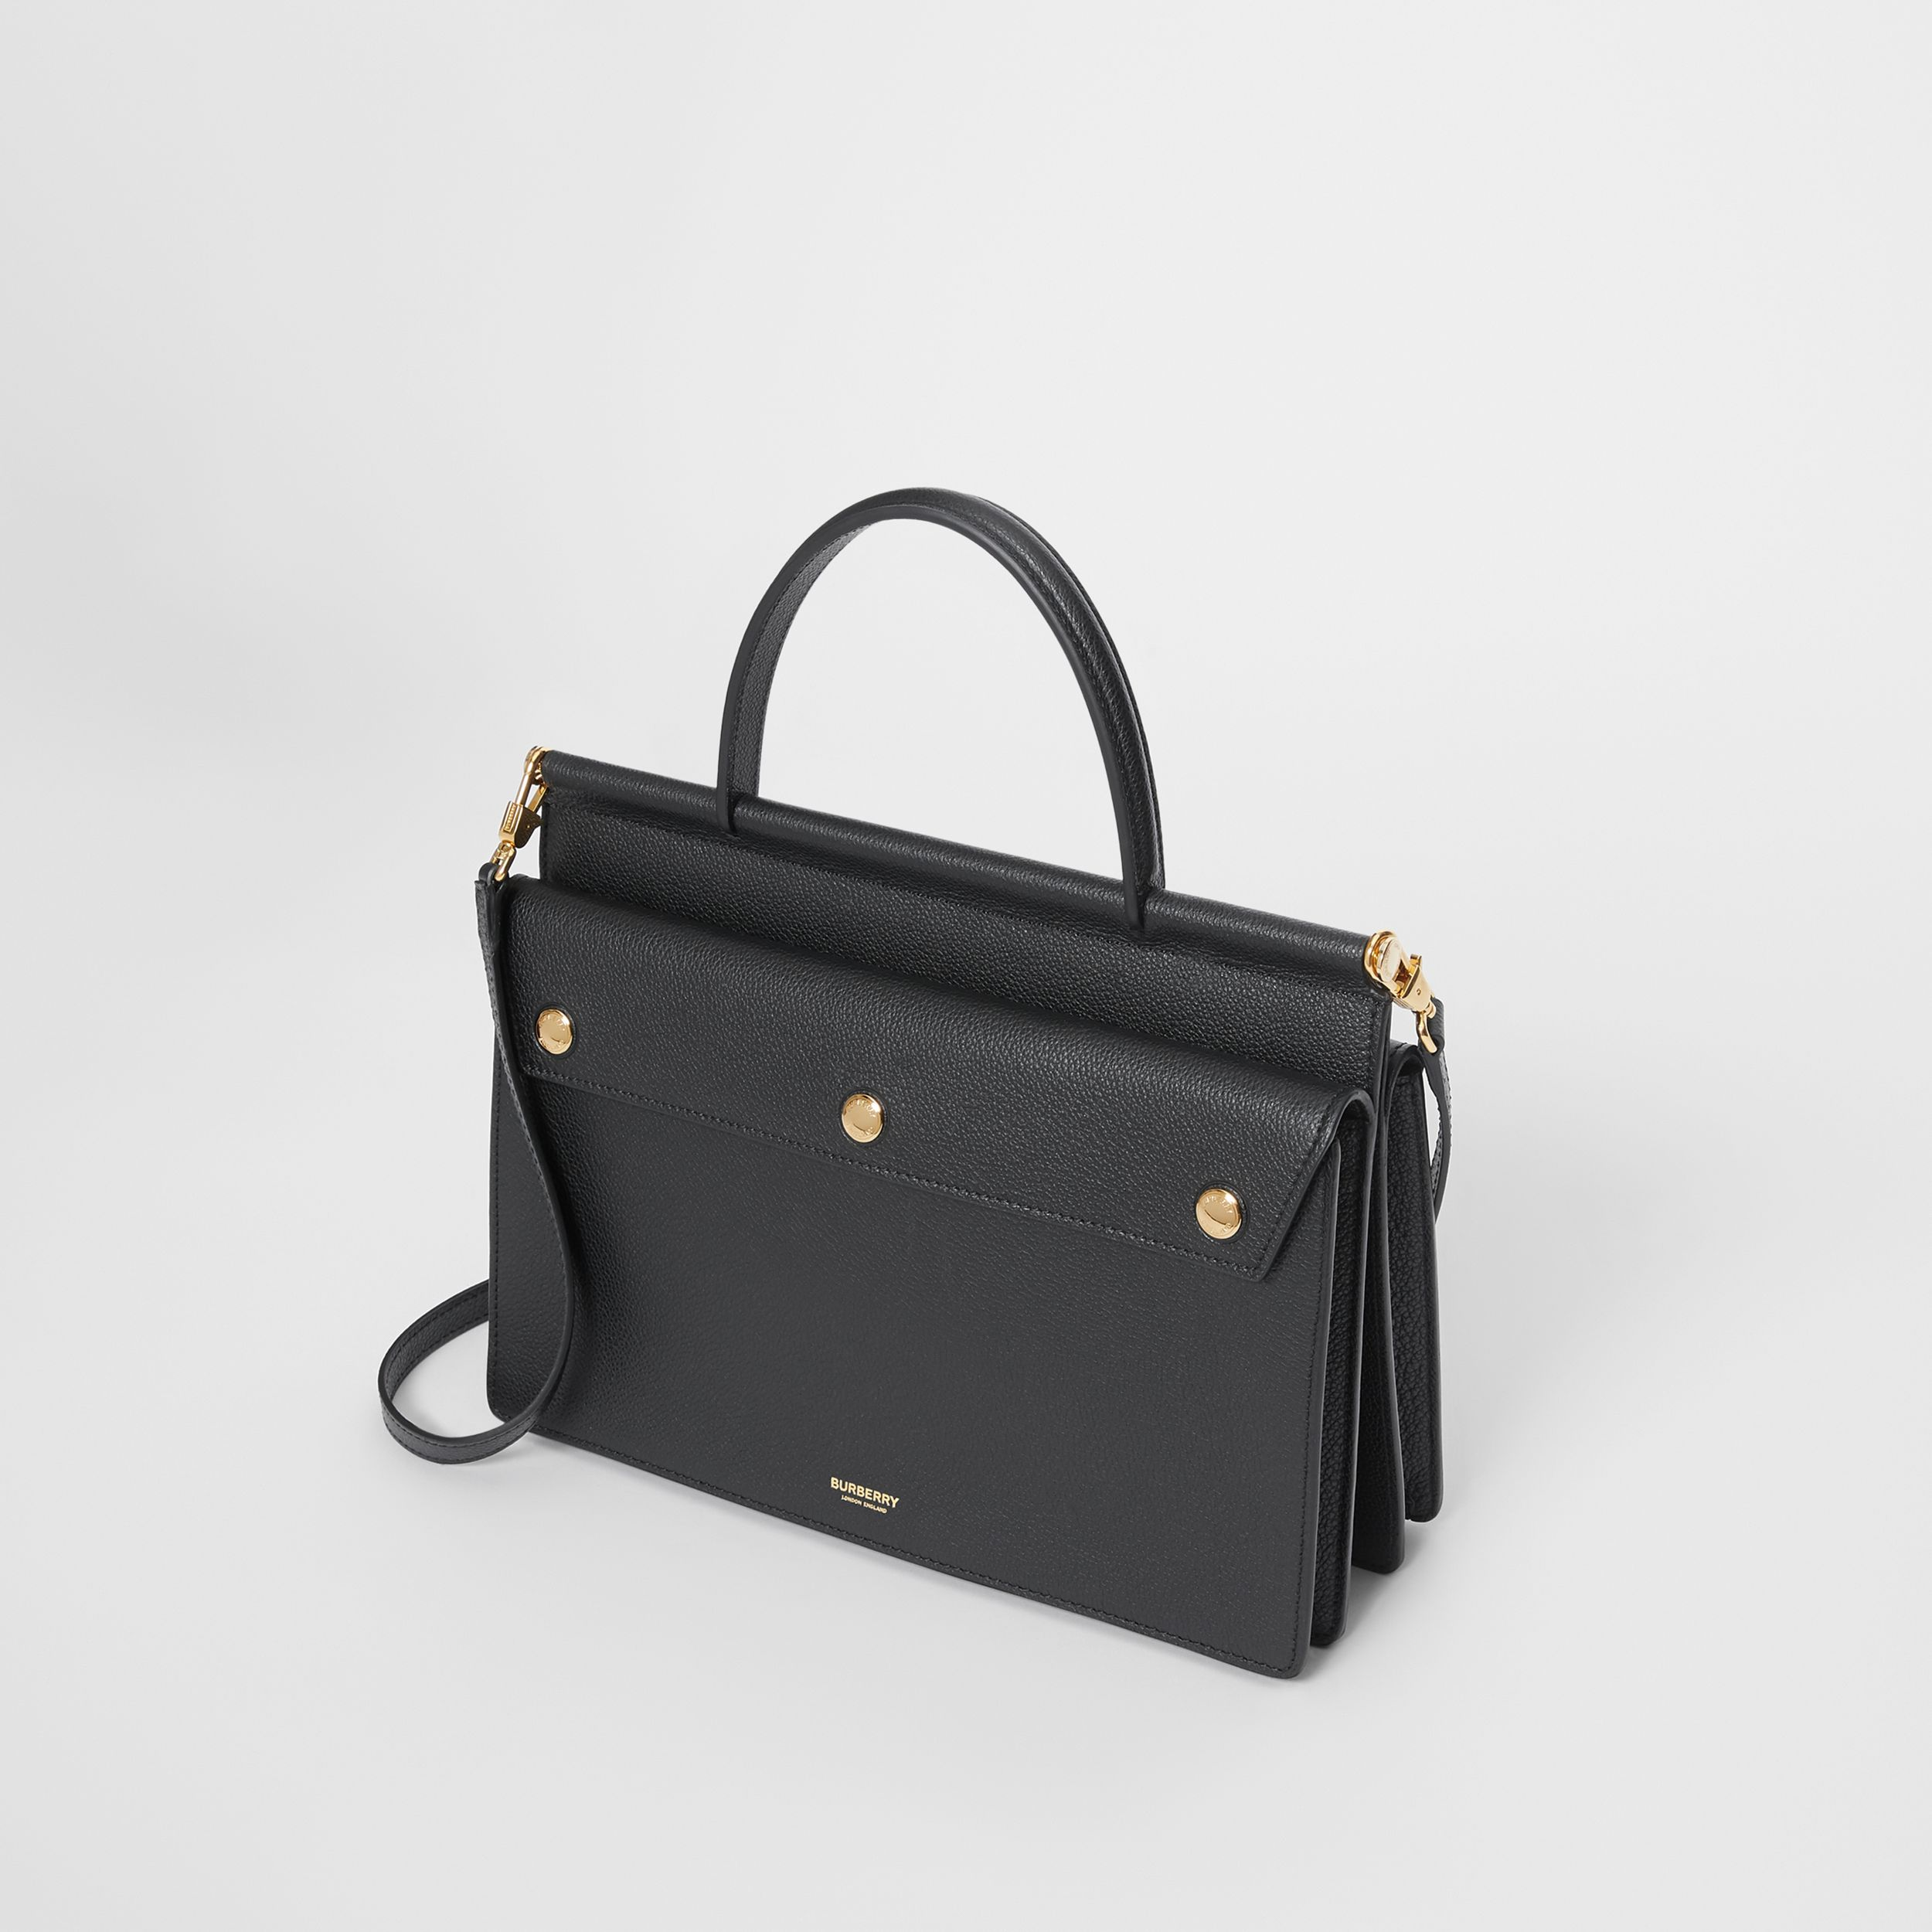 Small Leather Title Bag with Pocket Detail in Black - Women | Burberry Canada - 4